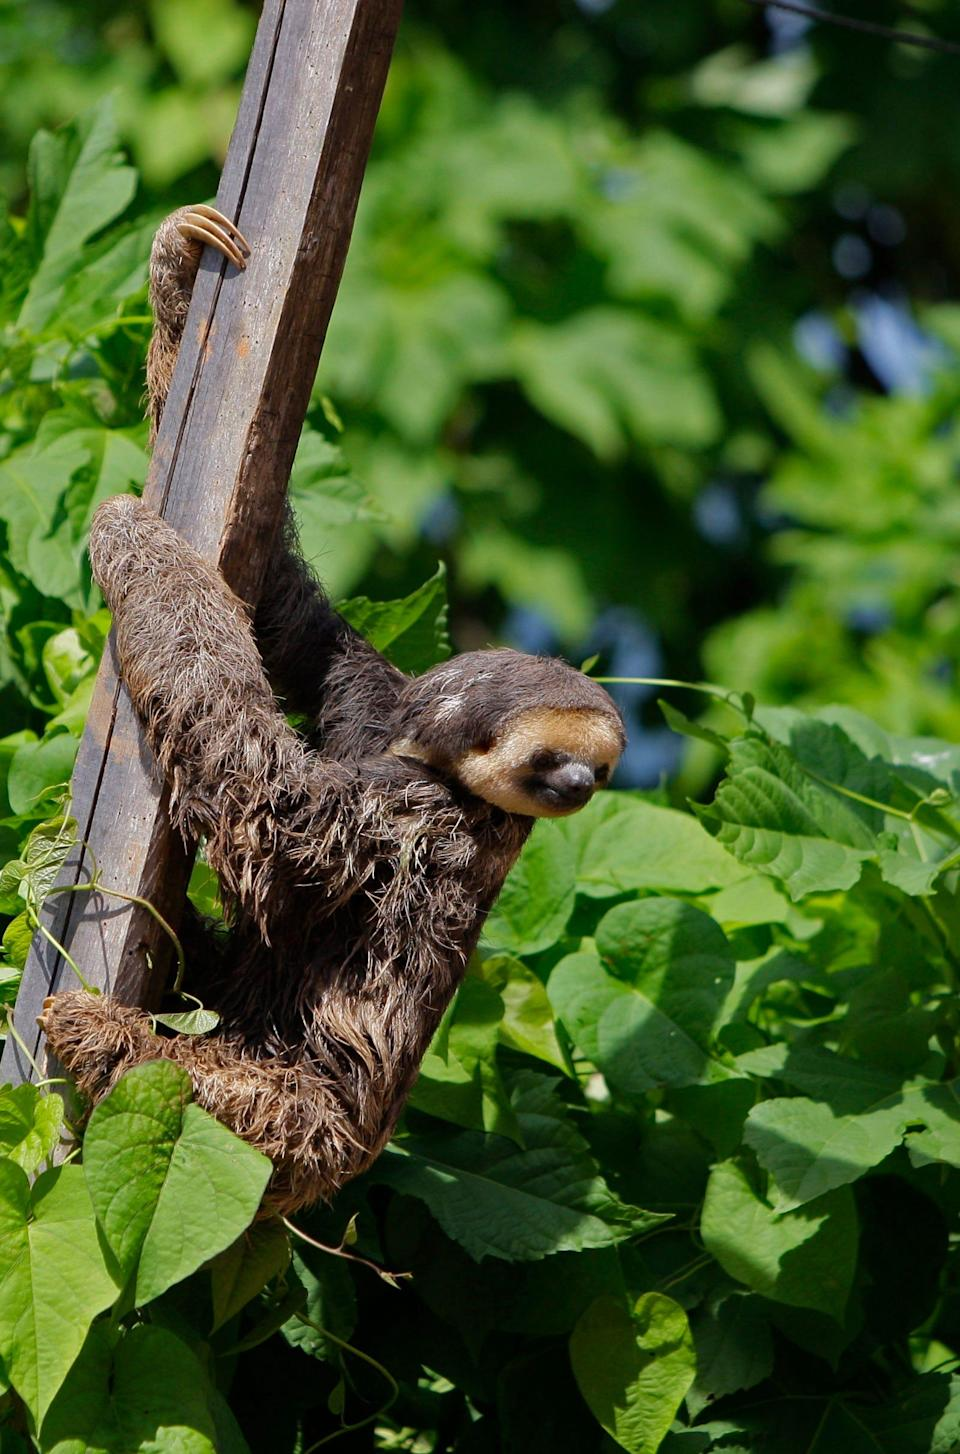 A sloth rests at the banks of the Blommestein Lake, about 100 miles south of Paramaribo, Suriname, on Aug. 14, 2010.